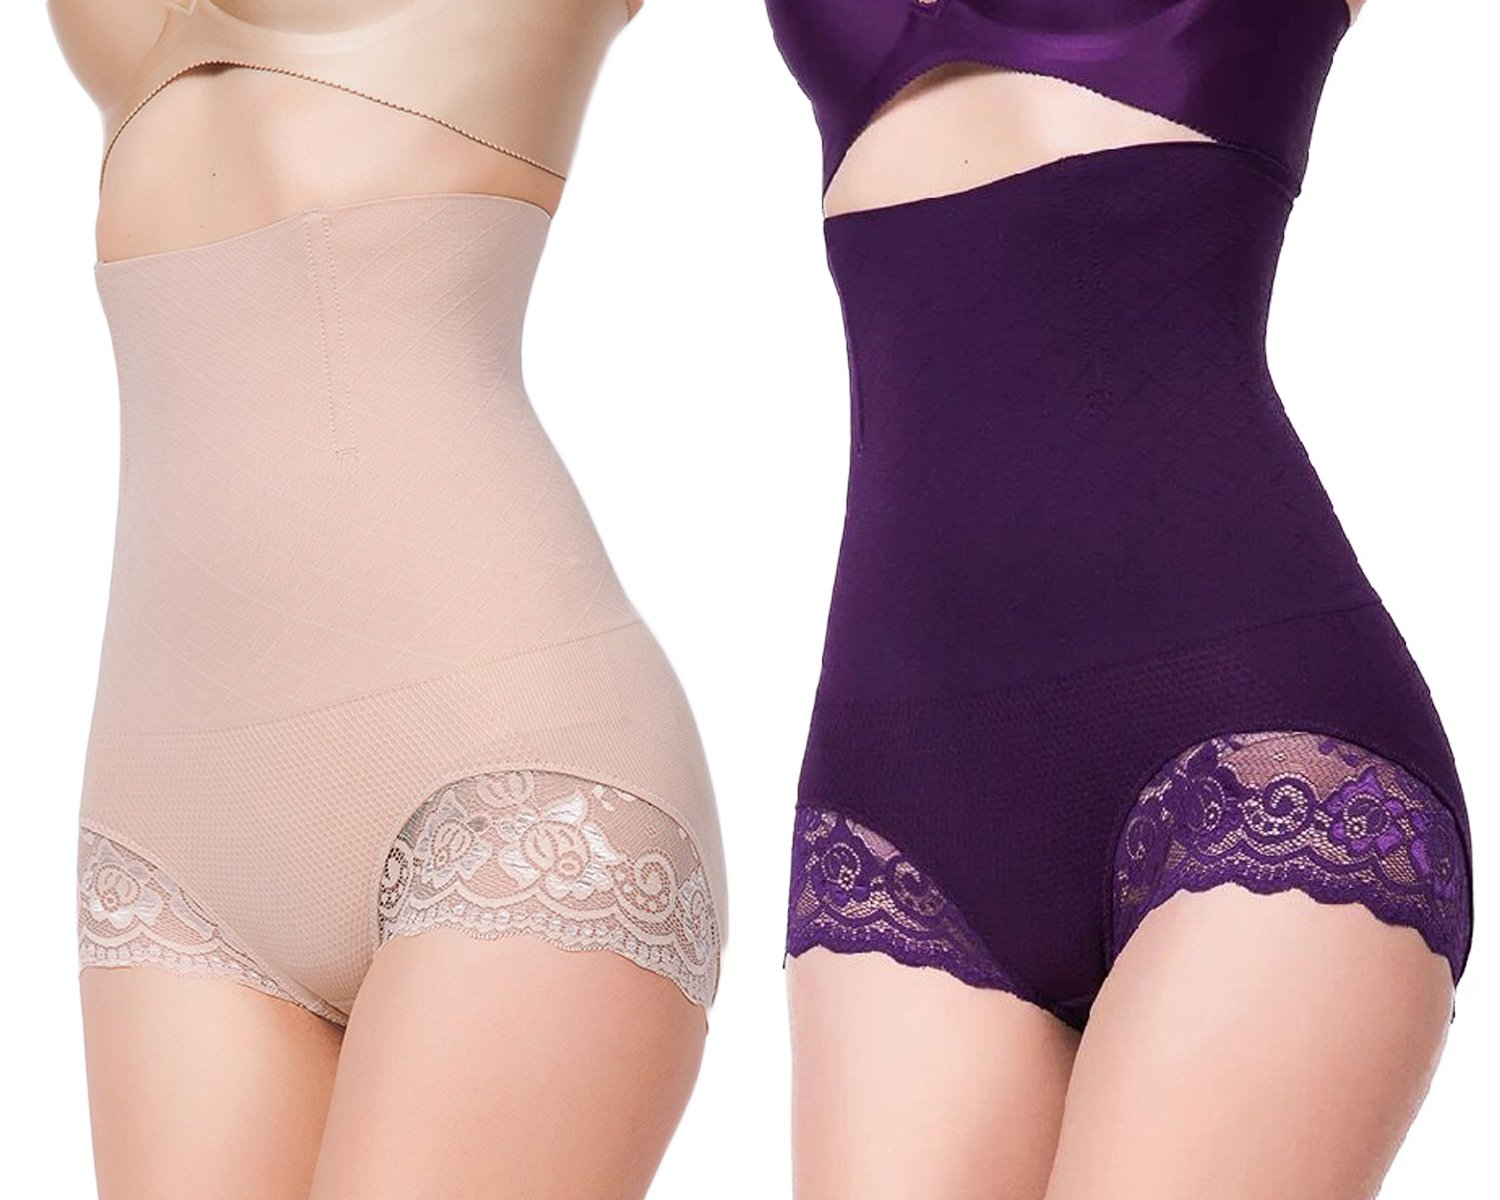 a3aba5664ed YaShaer 2 Pack Invisible Strapless Body Shaper Shapewear High Waist Tummy  Control Butt Lifter Panty Slim